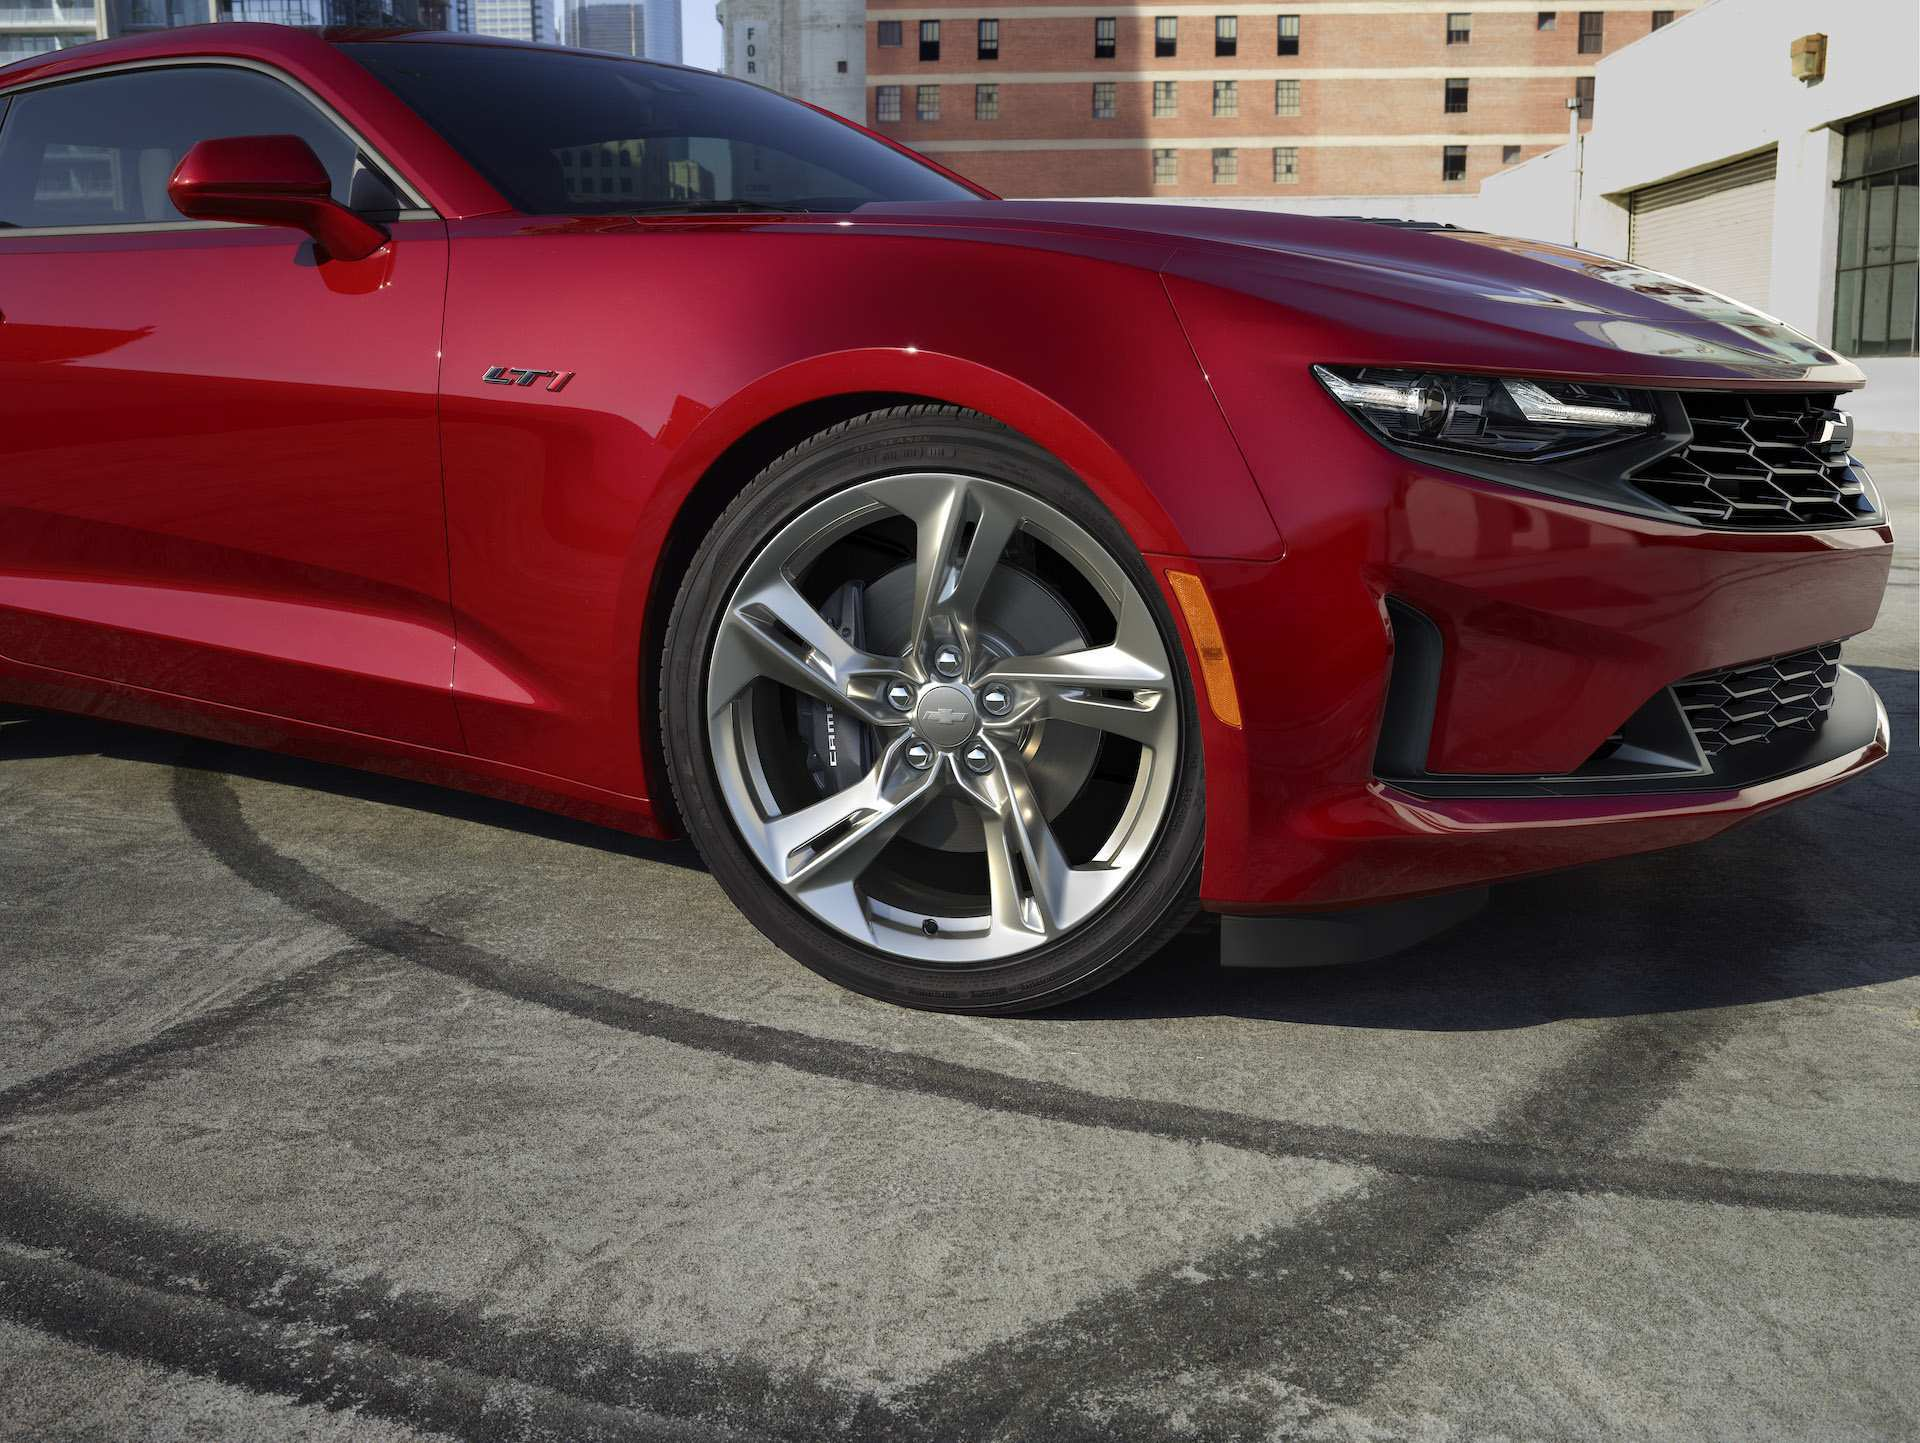 53 Best 2020 Chevrolet Camaro Zl1 Prices